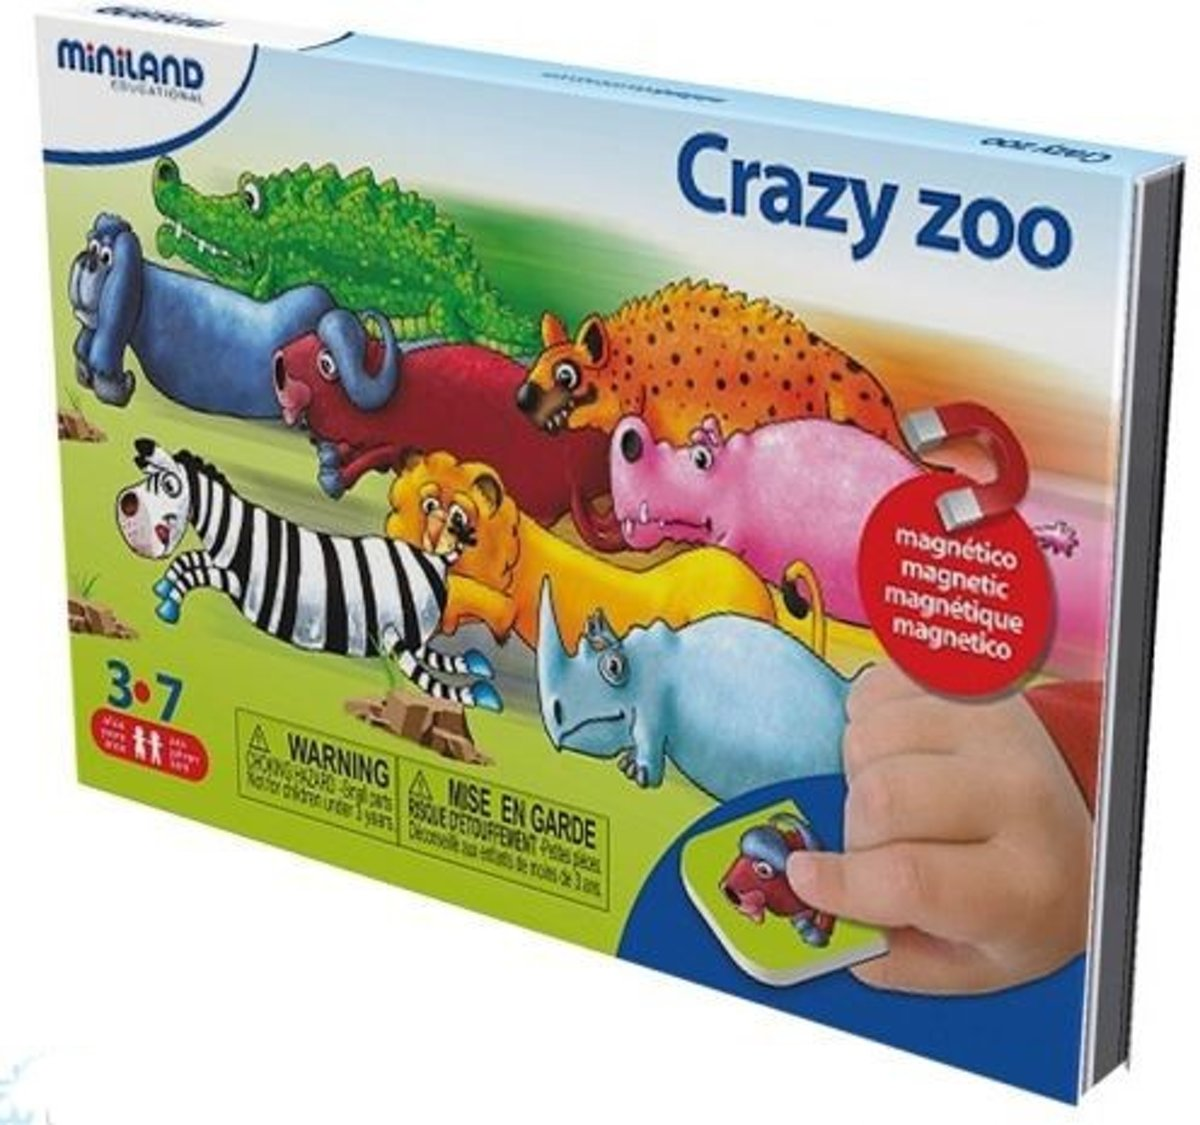 Taal: On The Go Magnetisch Spel Crazy Zoo